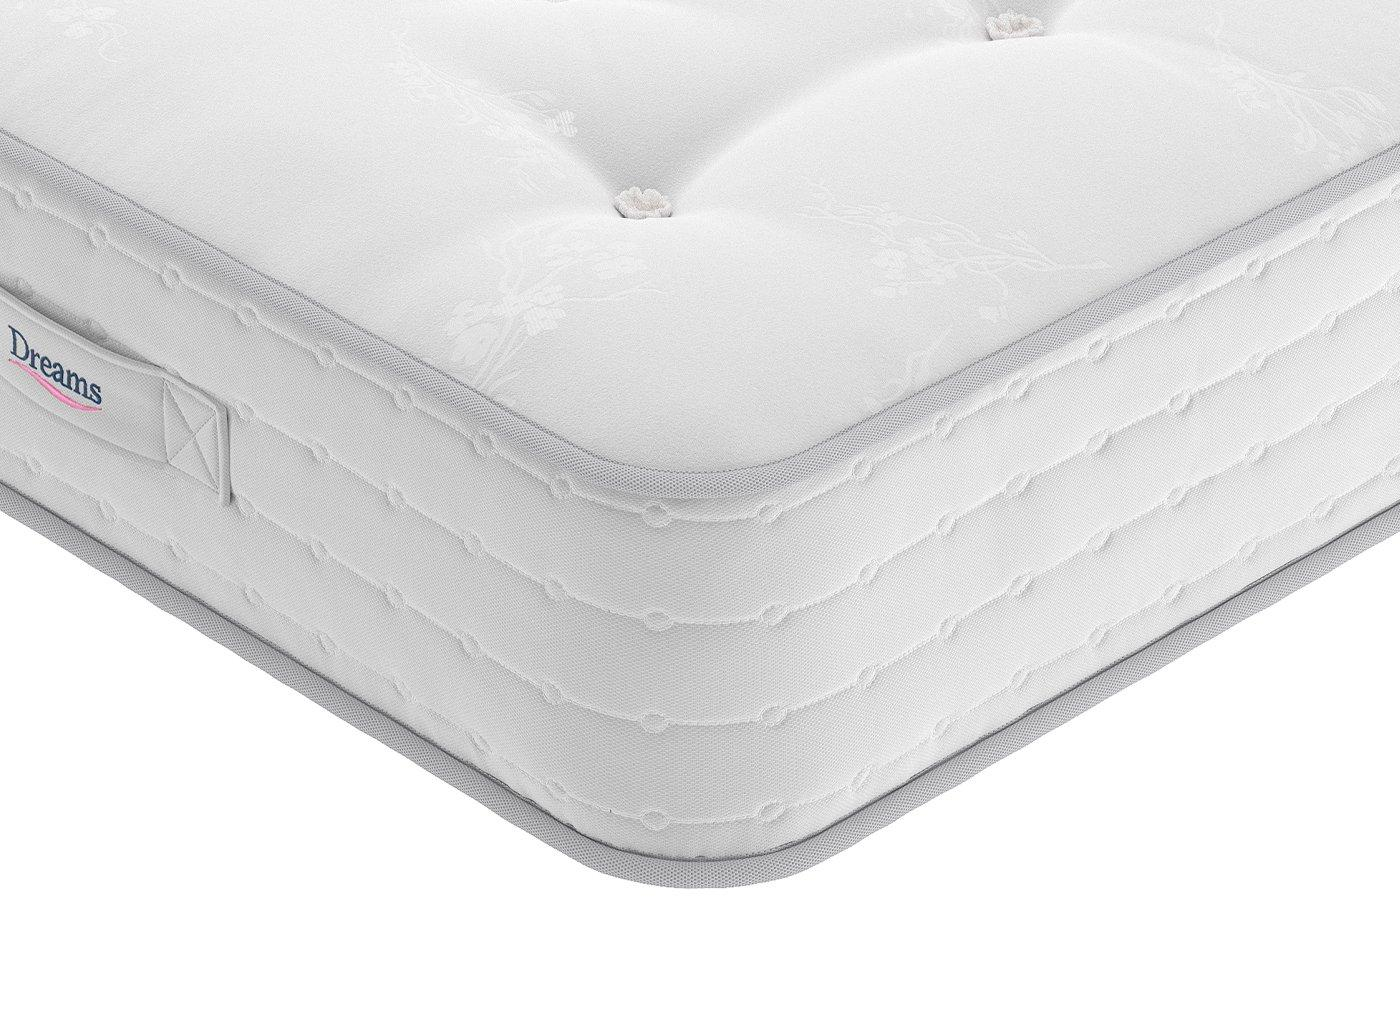 Reynolds Pocket Sprung Mattress (£349)